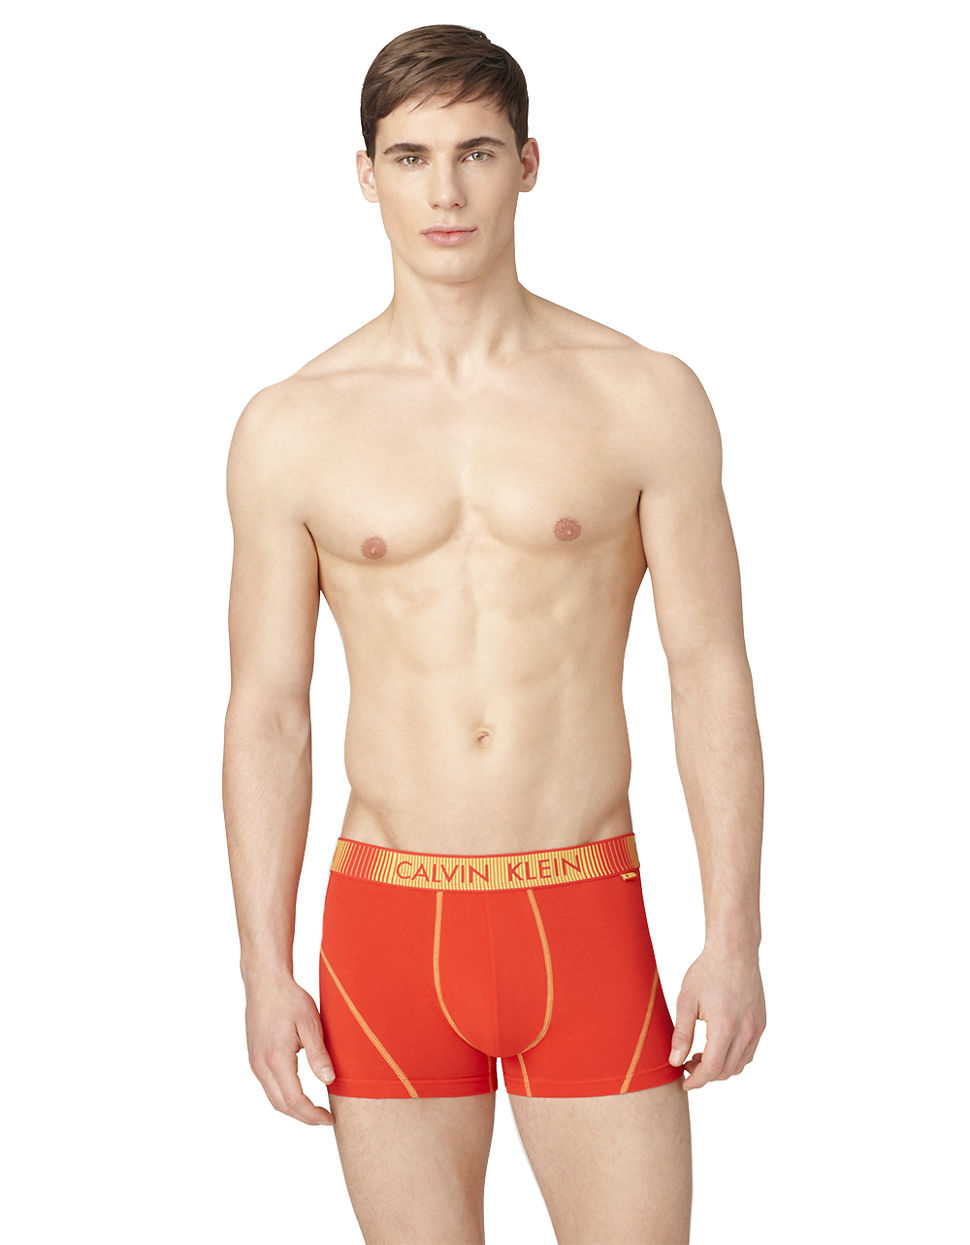 calvin klein flaginspired seamed boxer shorts in red for men spain red lyst. Black Bedroom Furniture Sets. Home Design Ideas